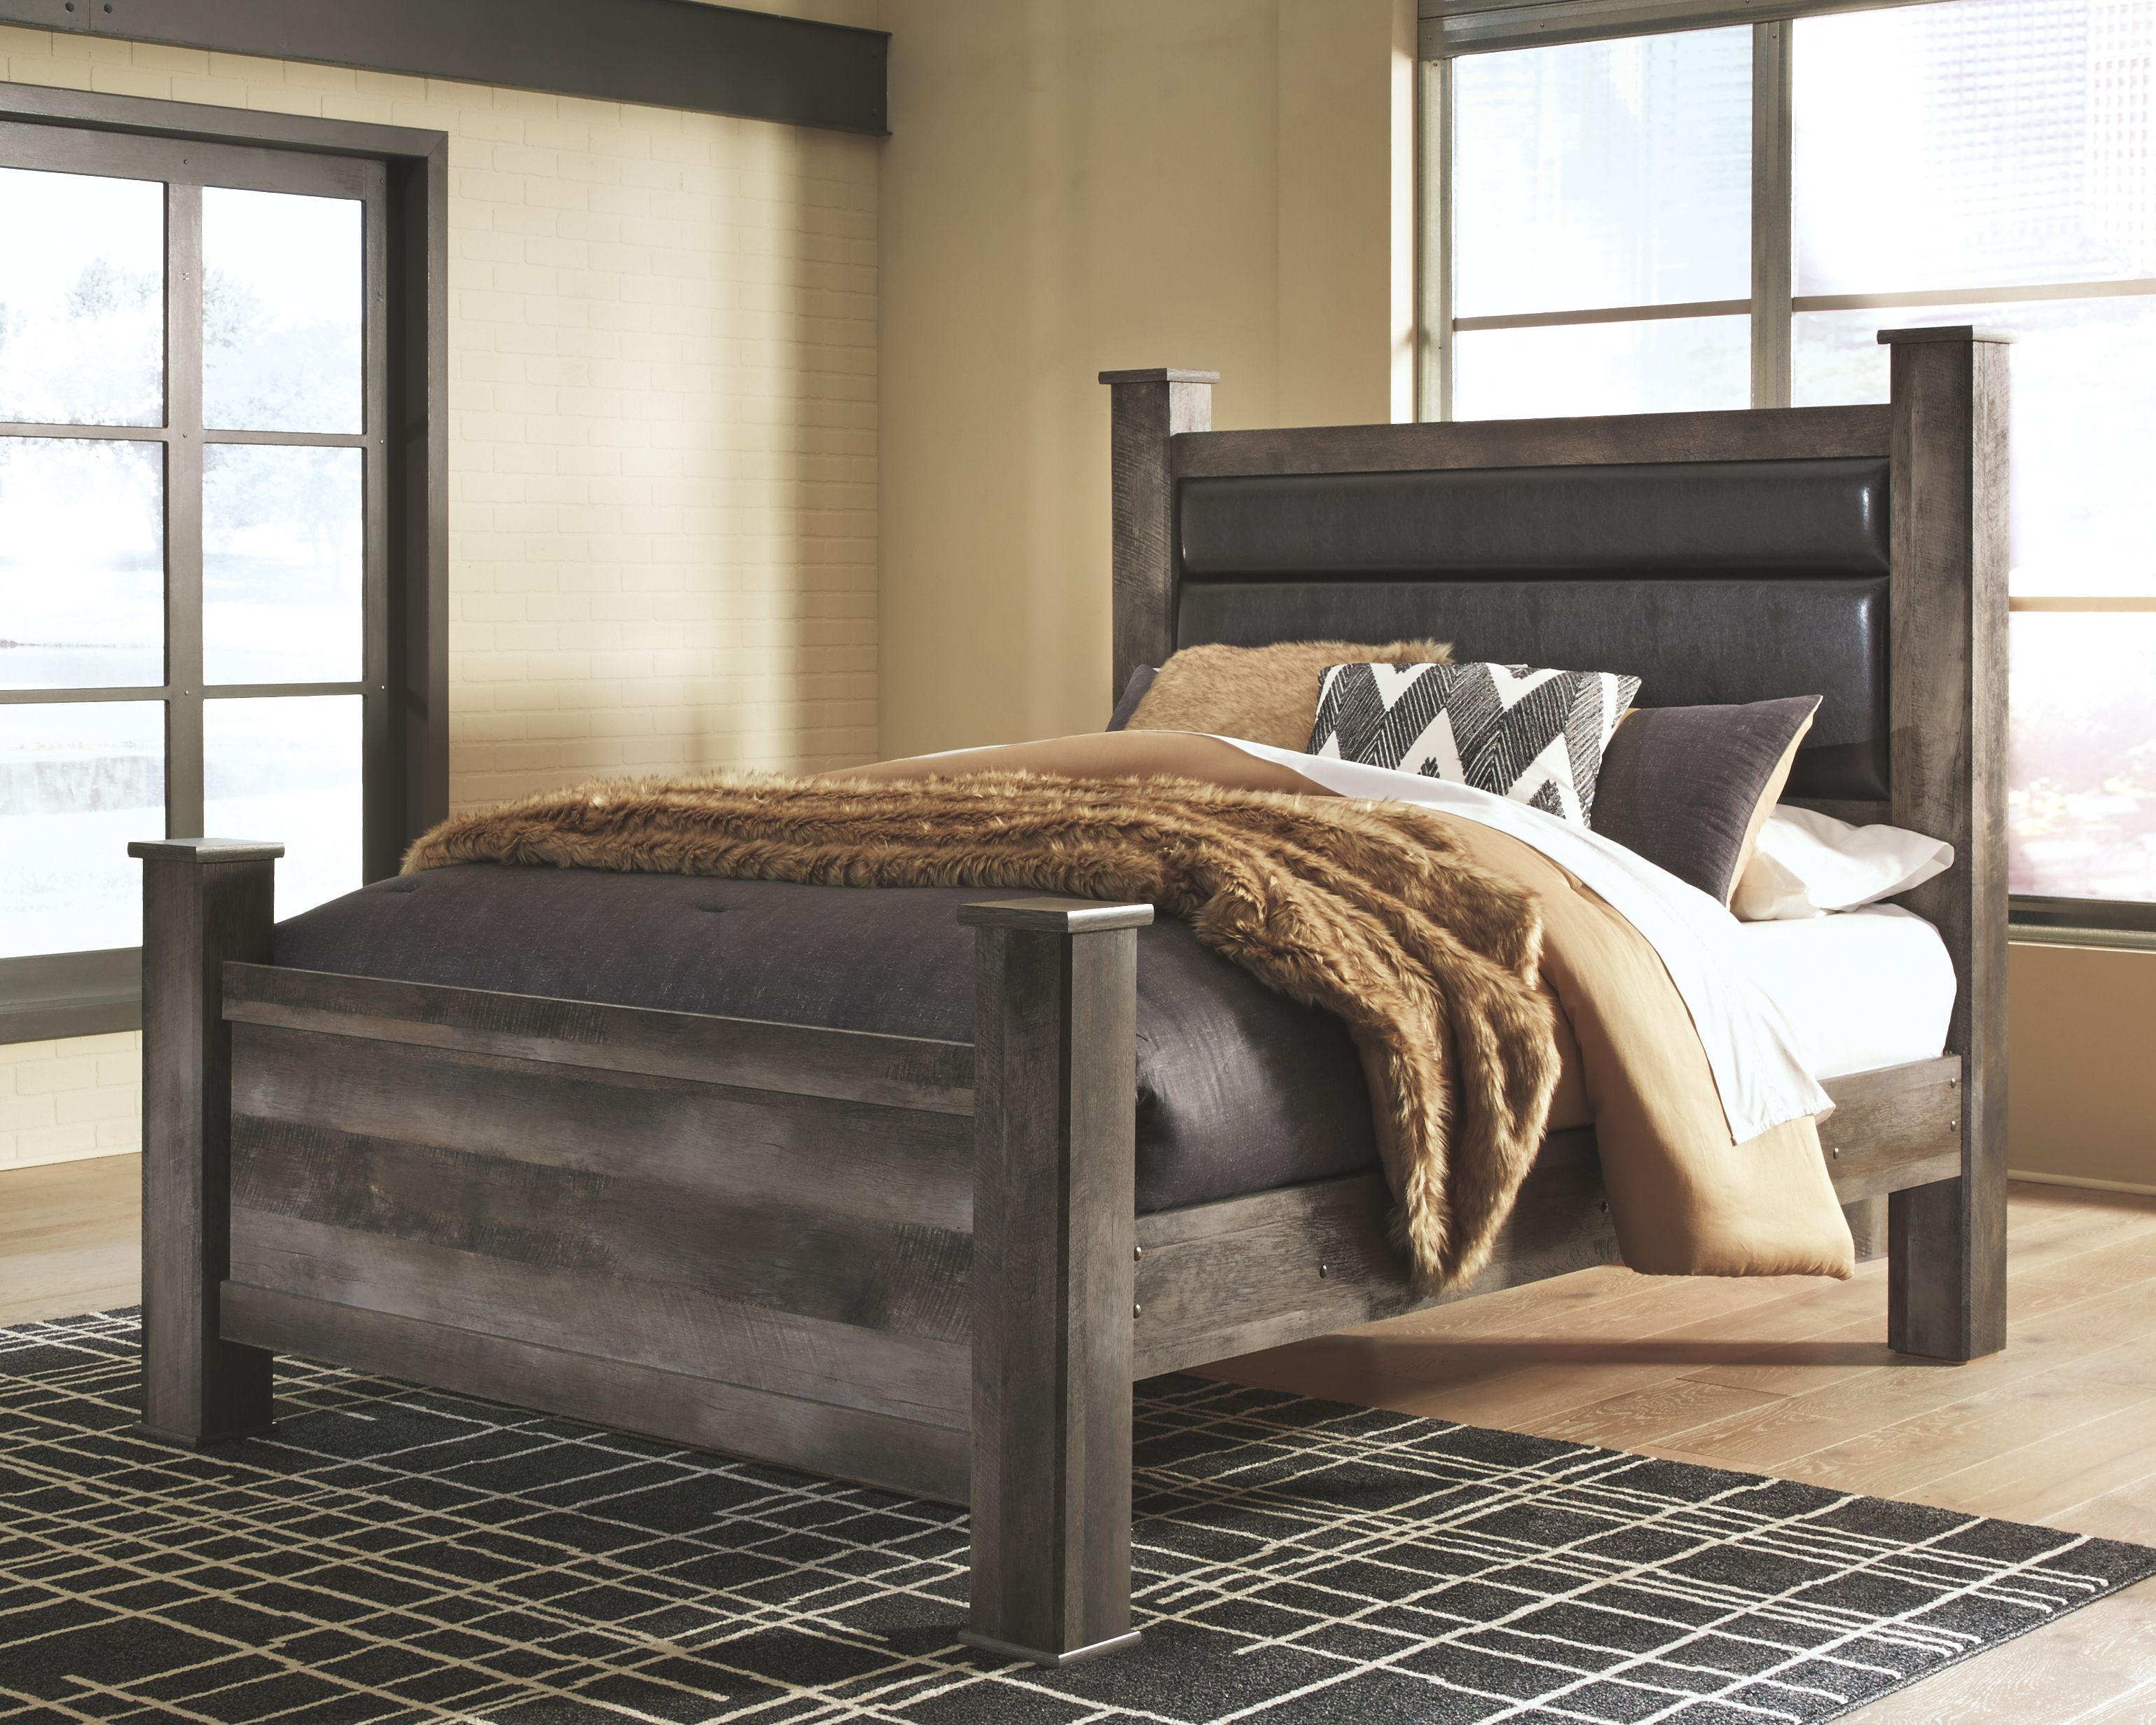 Wynnlow Queen Poster Bed Ashley furniture bedroom, Bed